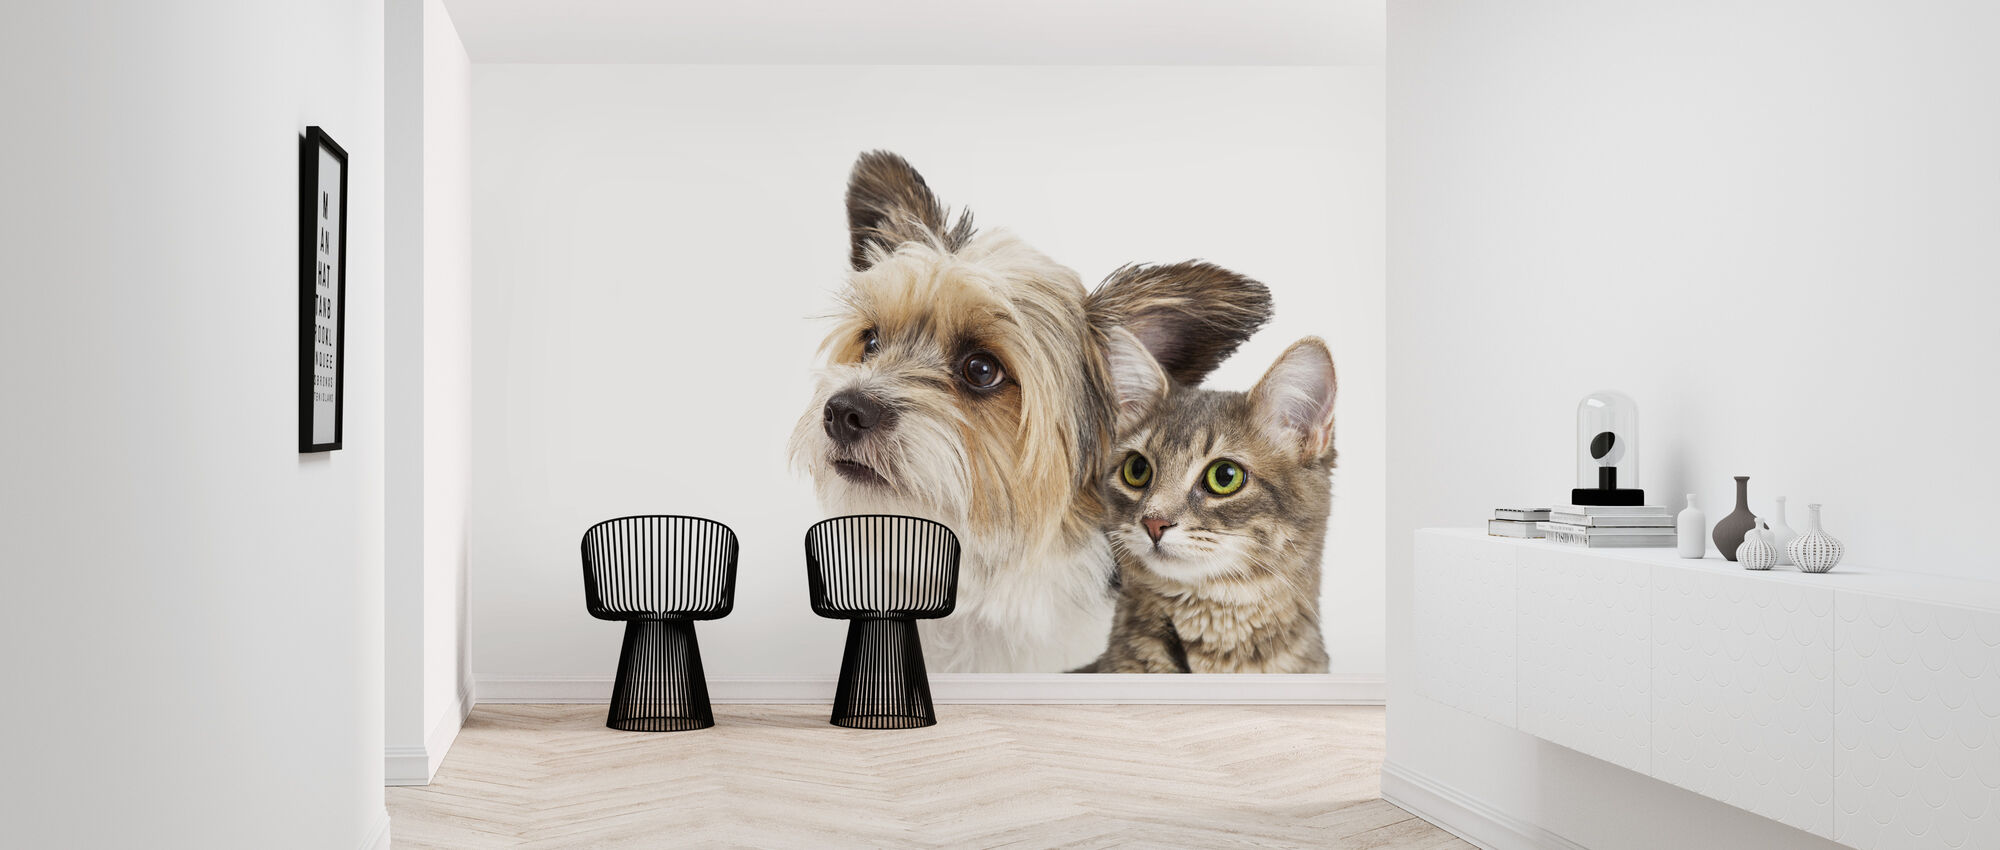 Cat and Dog - Wallpaper - Hallway